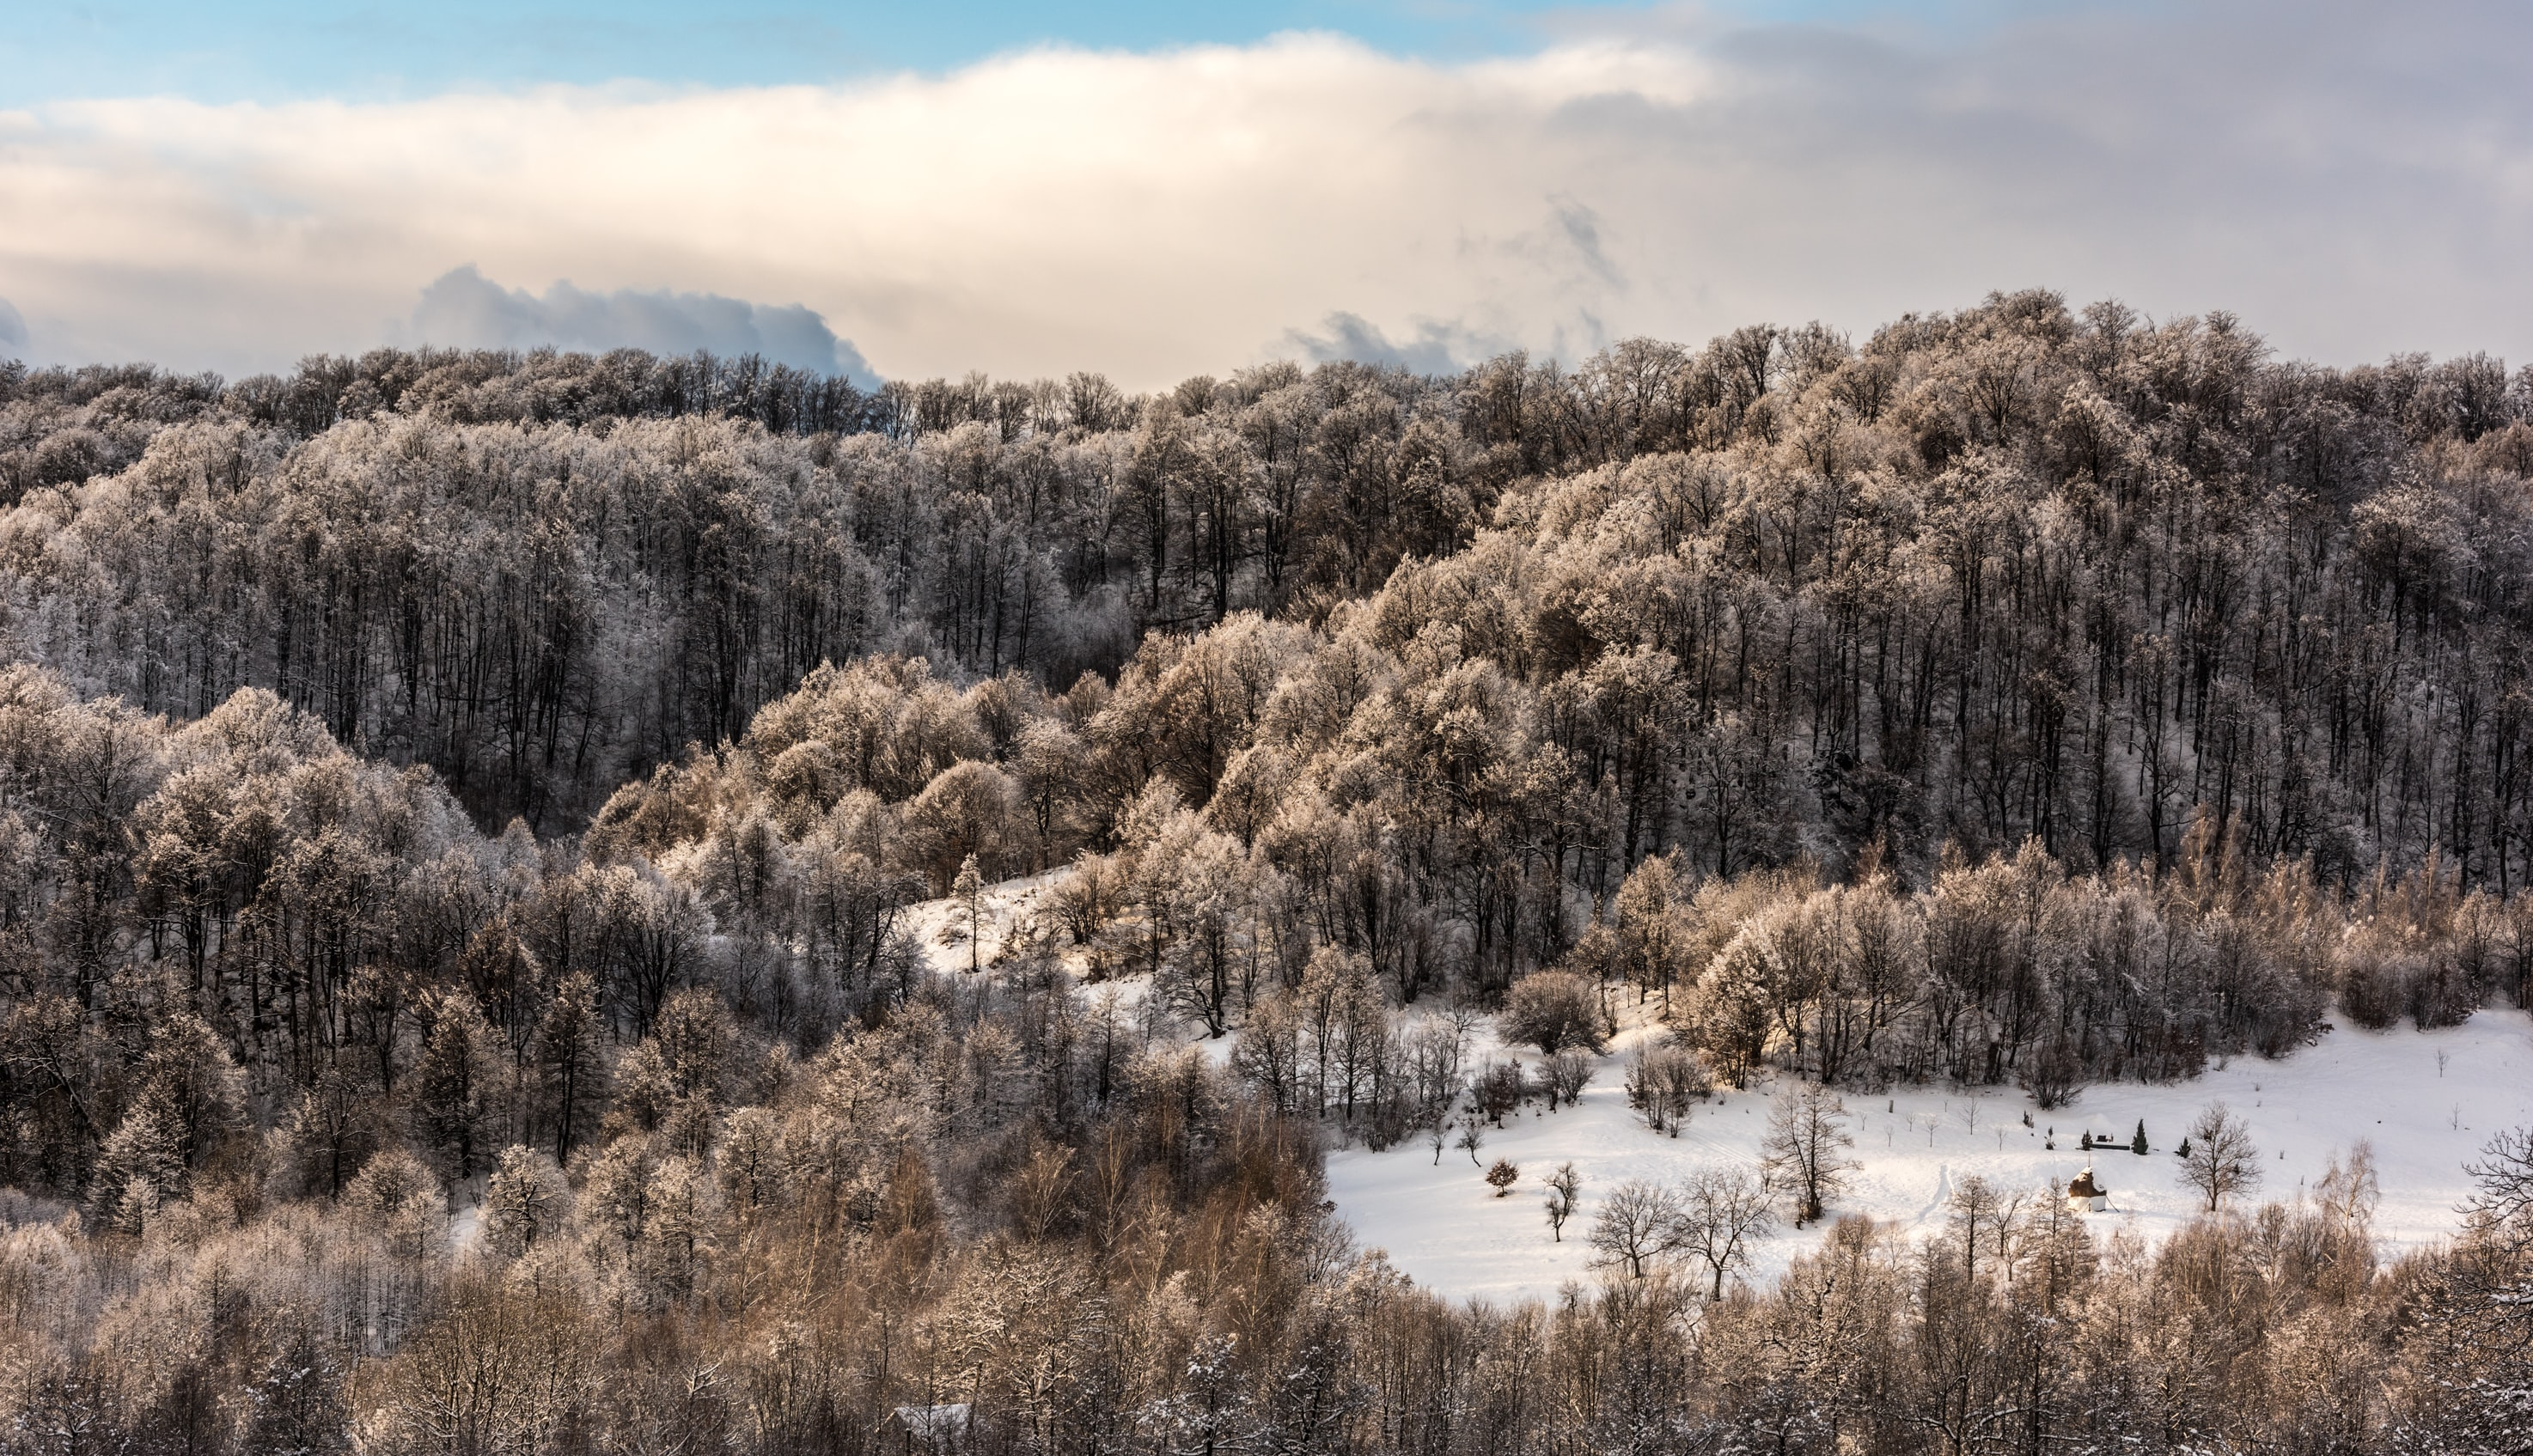 A landscape photo showing off the magnitude of the snow covered forest in Maramures County